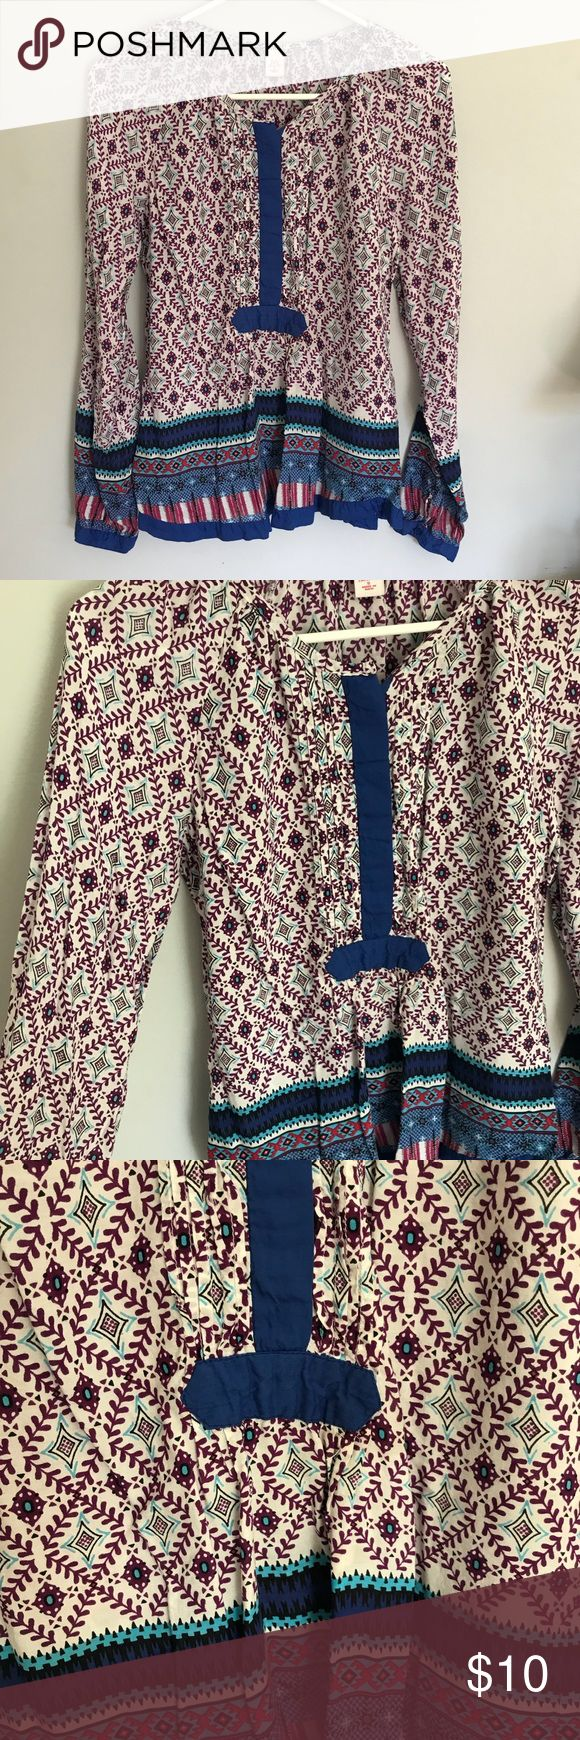 Purple and Blue Bohemian Blouse Purple and blue patterned bohemian blouse. Moroccan and Indian inspired! Free People Tops Blouses